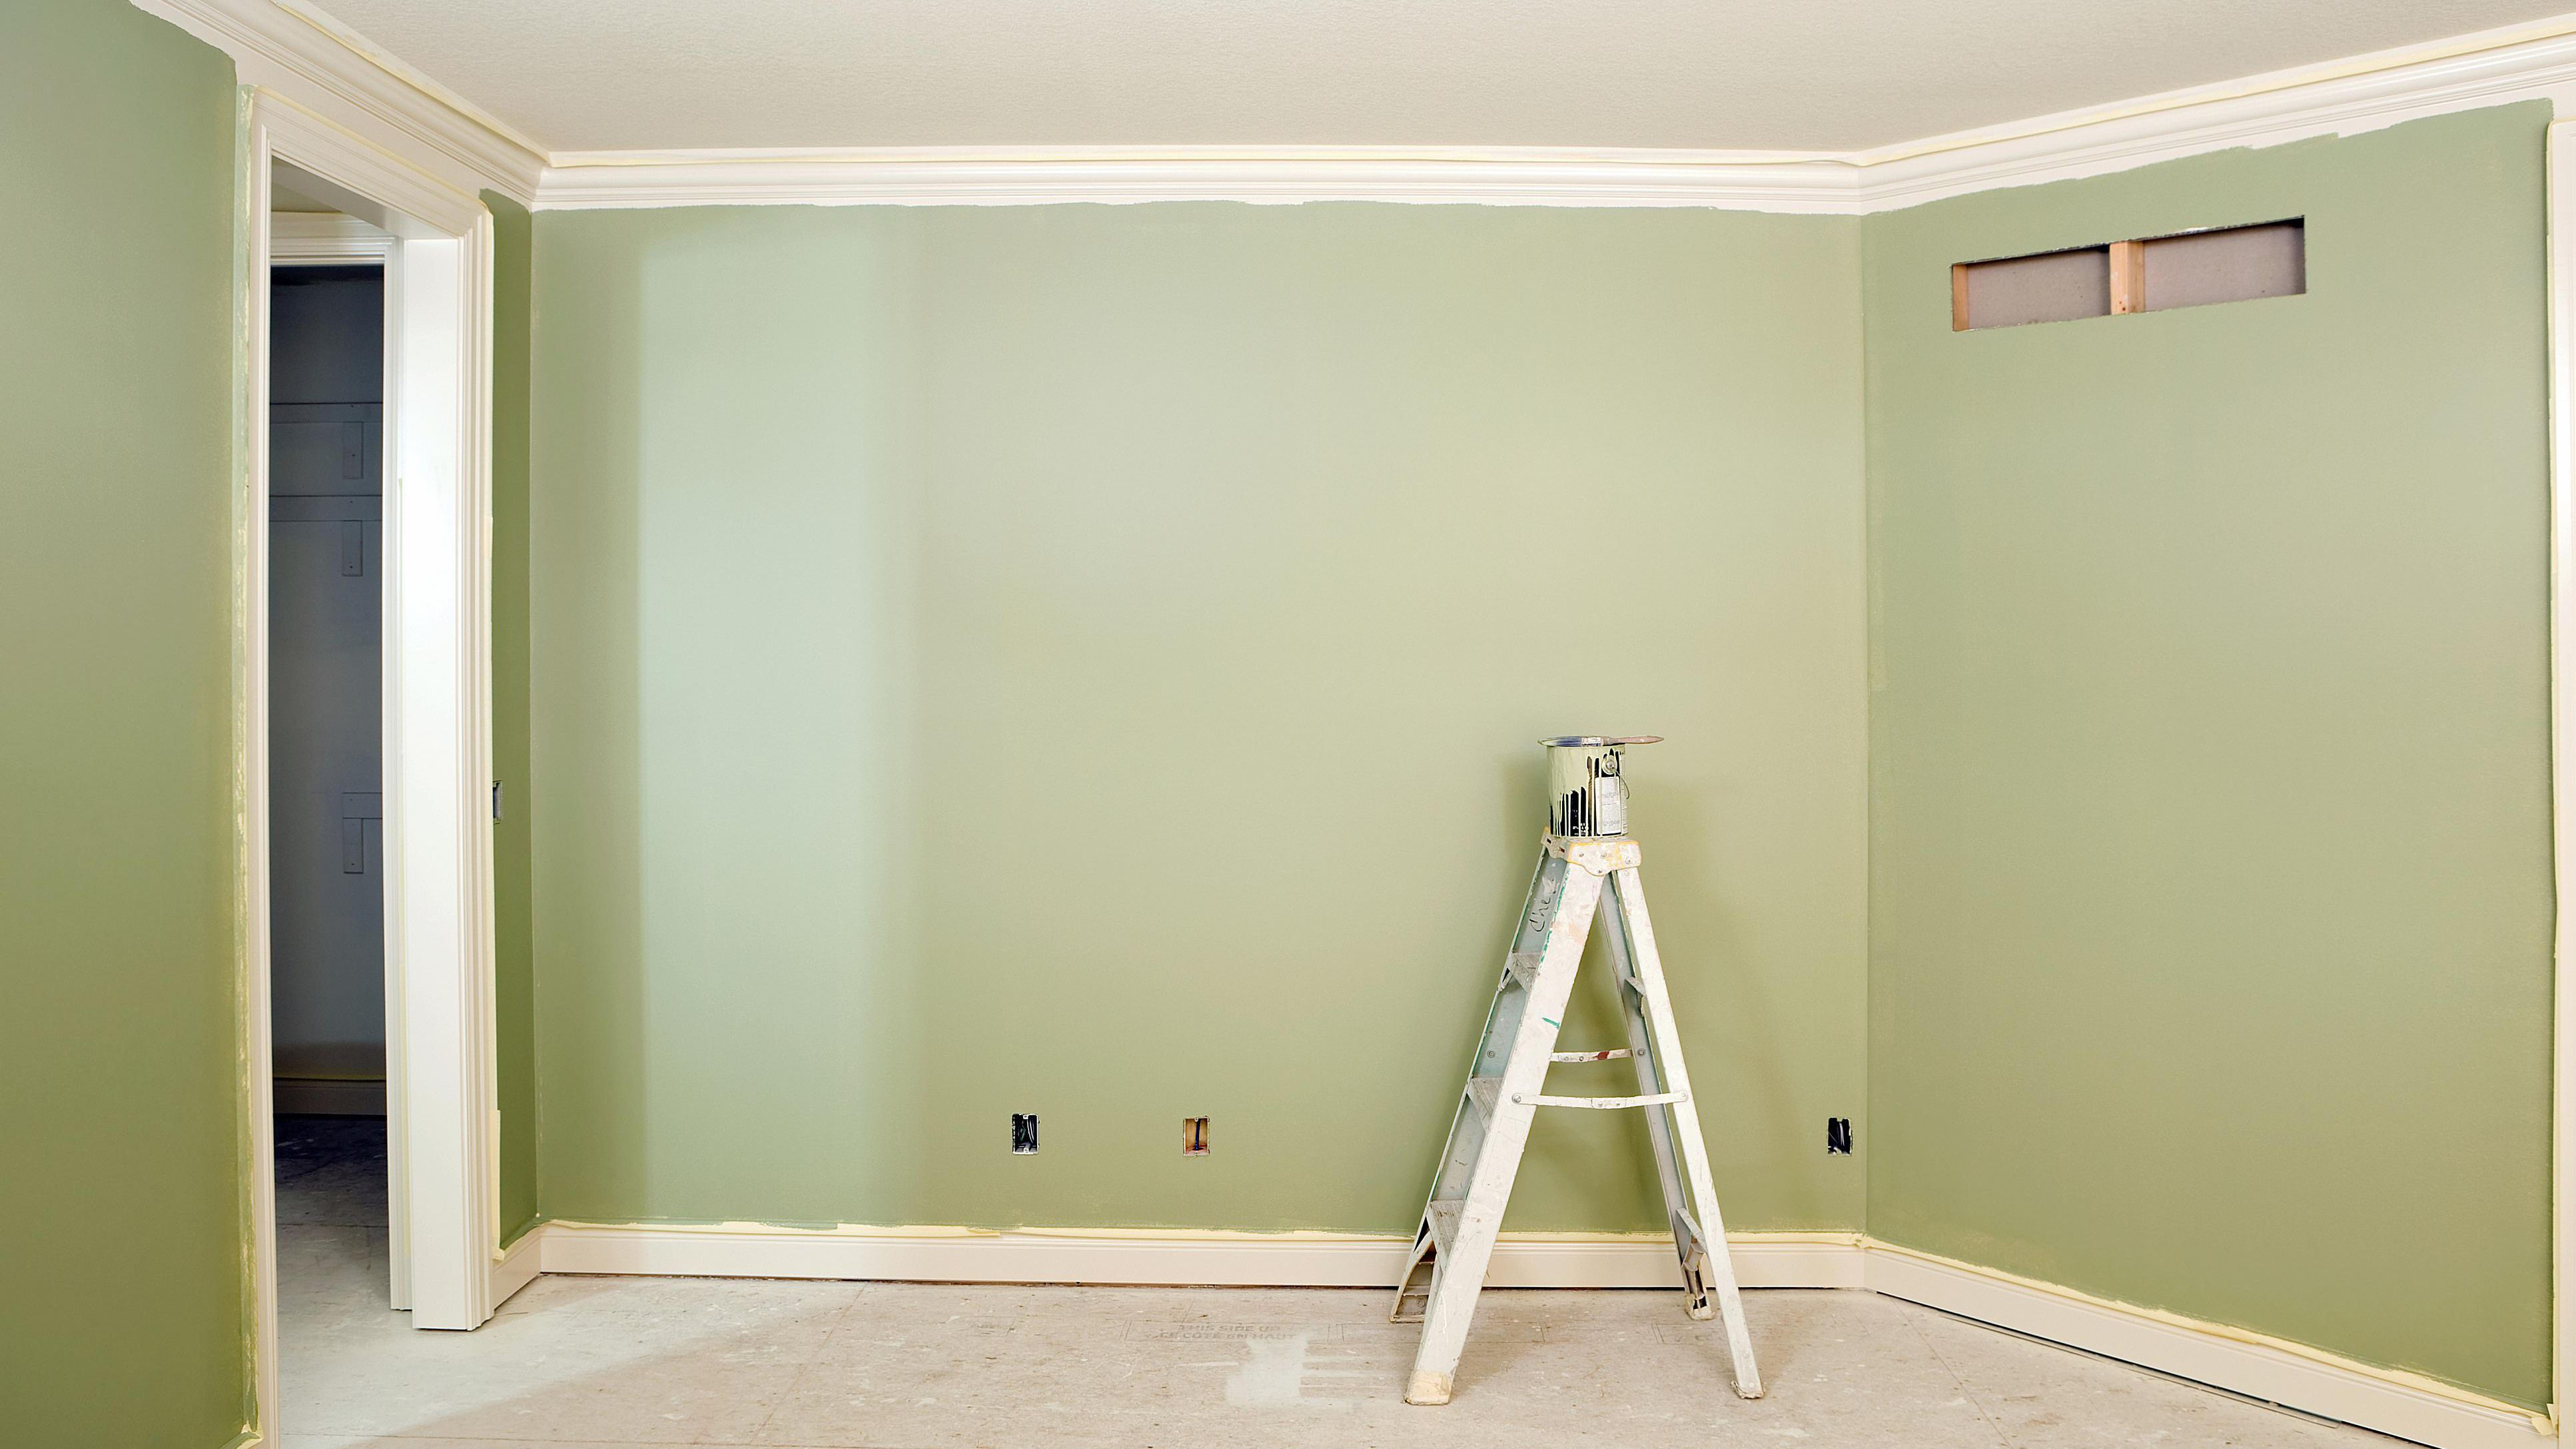 The Pros And Cons Of Starting A Home Painting Business